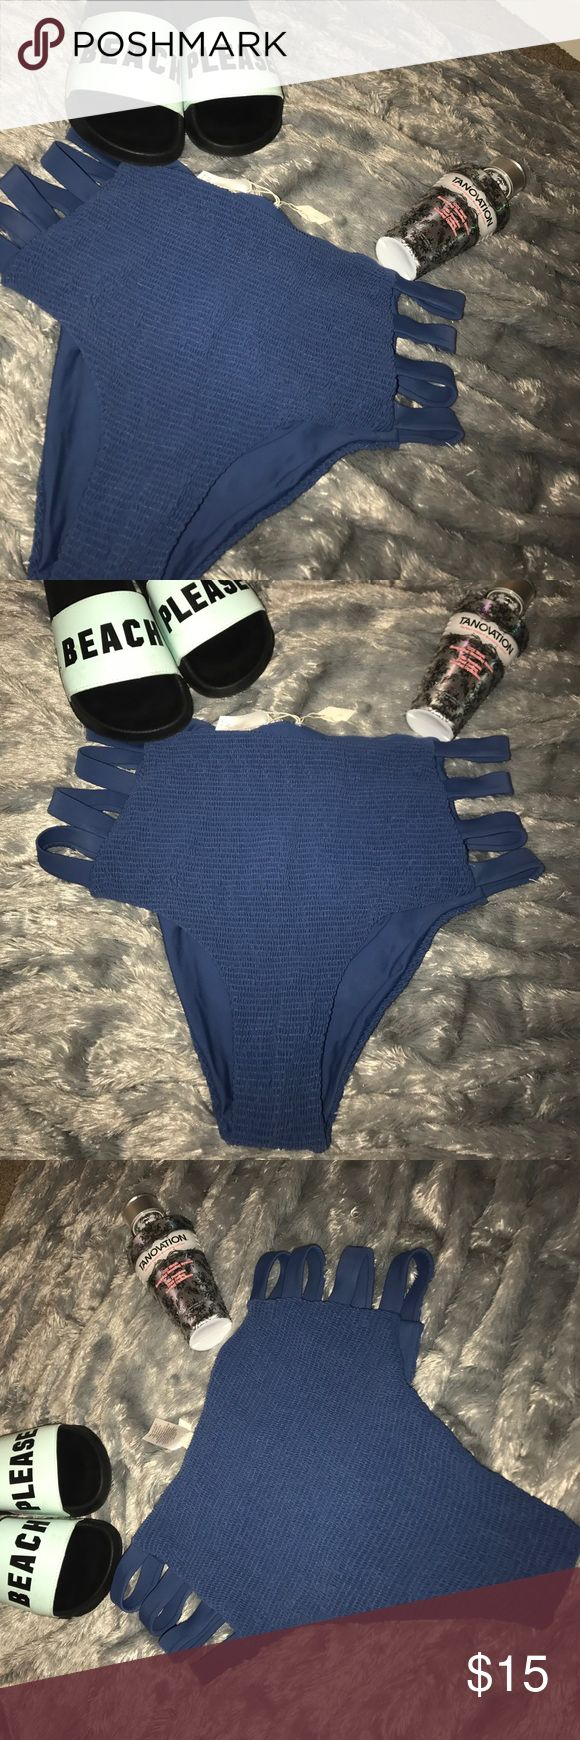 Trendy high waisted bathing suit bottoms size xl These are super retro and super cute! Trendy high waisted bathing suit bottoms size xl Swim Bikinis